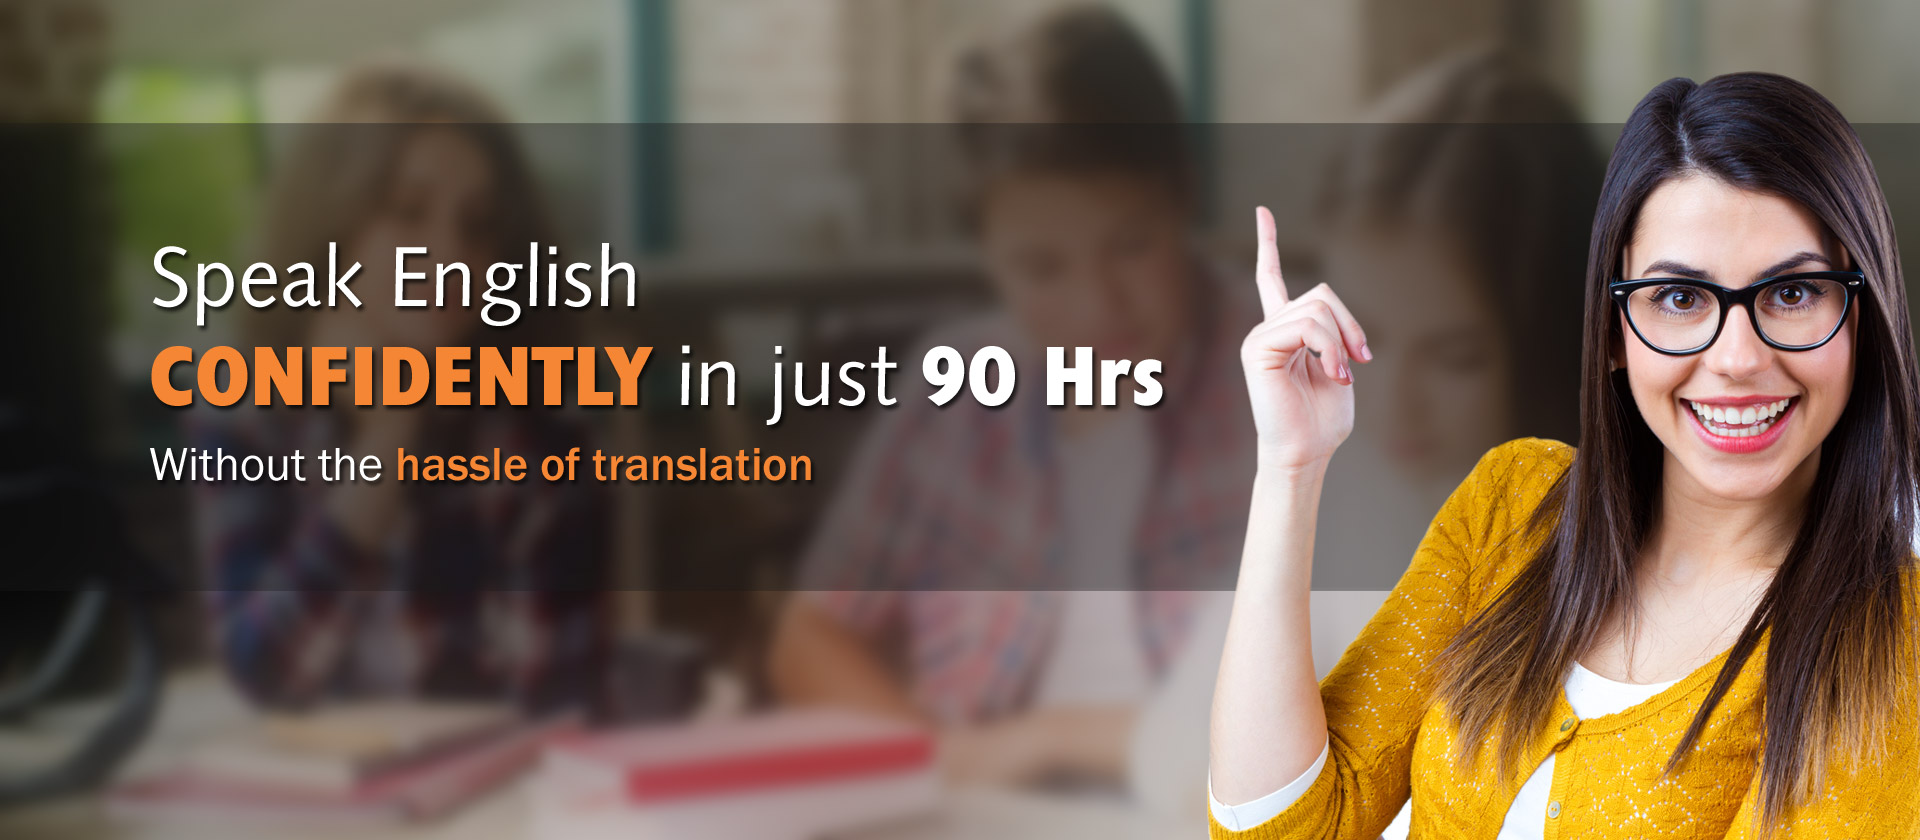 ACE- Institute for English Language & Best English Speaking